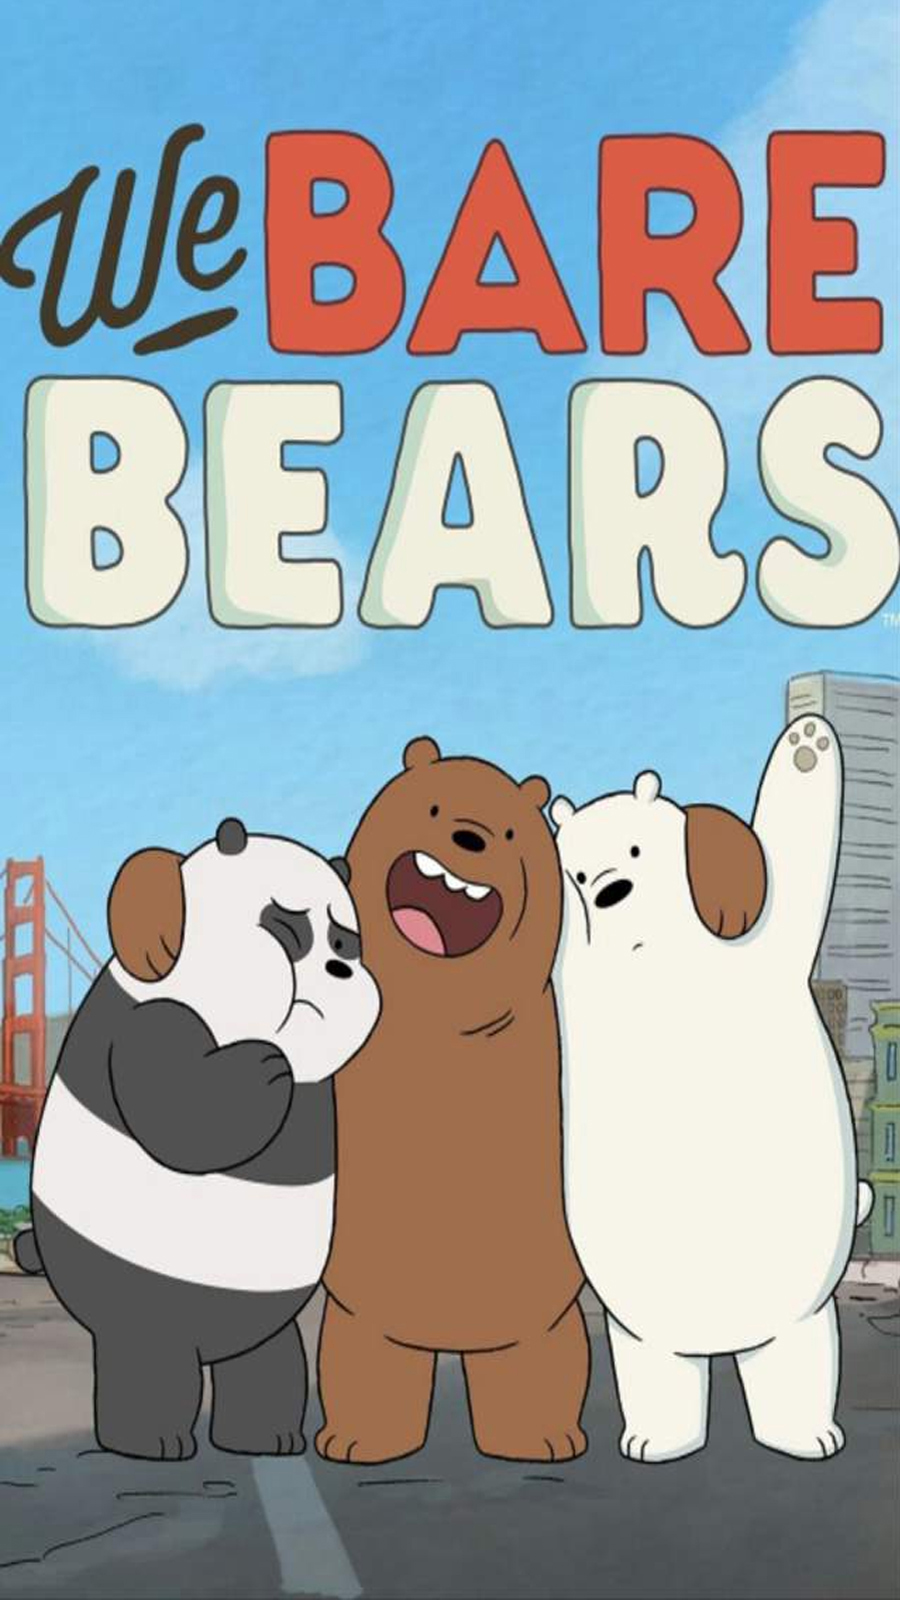 We Bare Bears Wallpapers Free Download